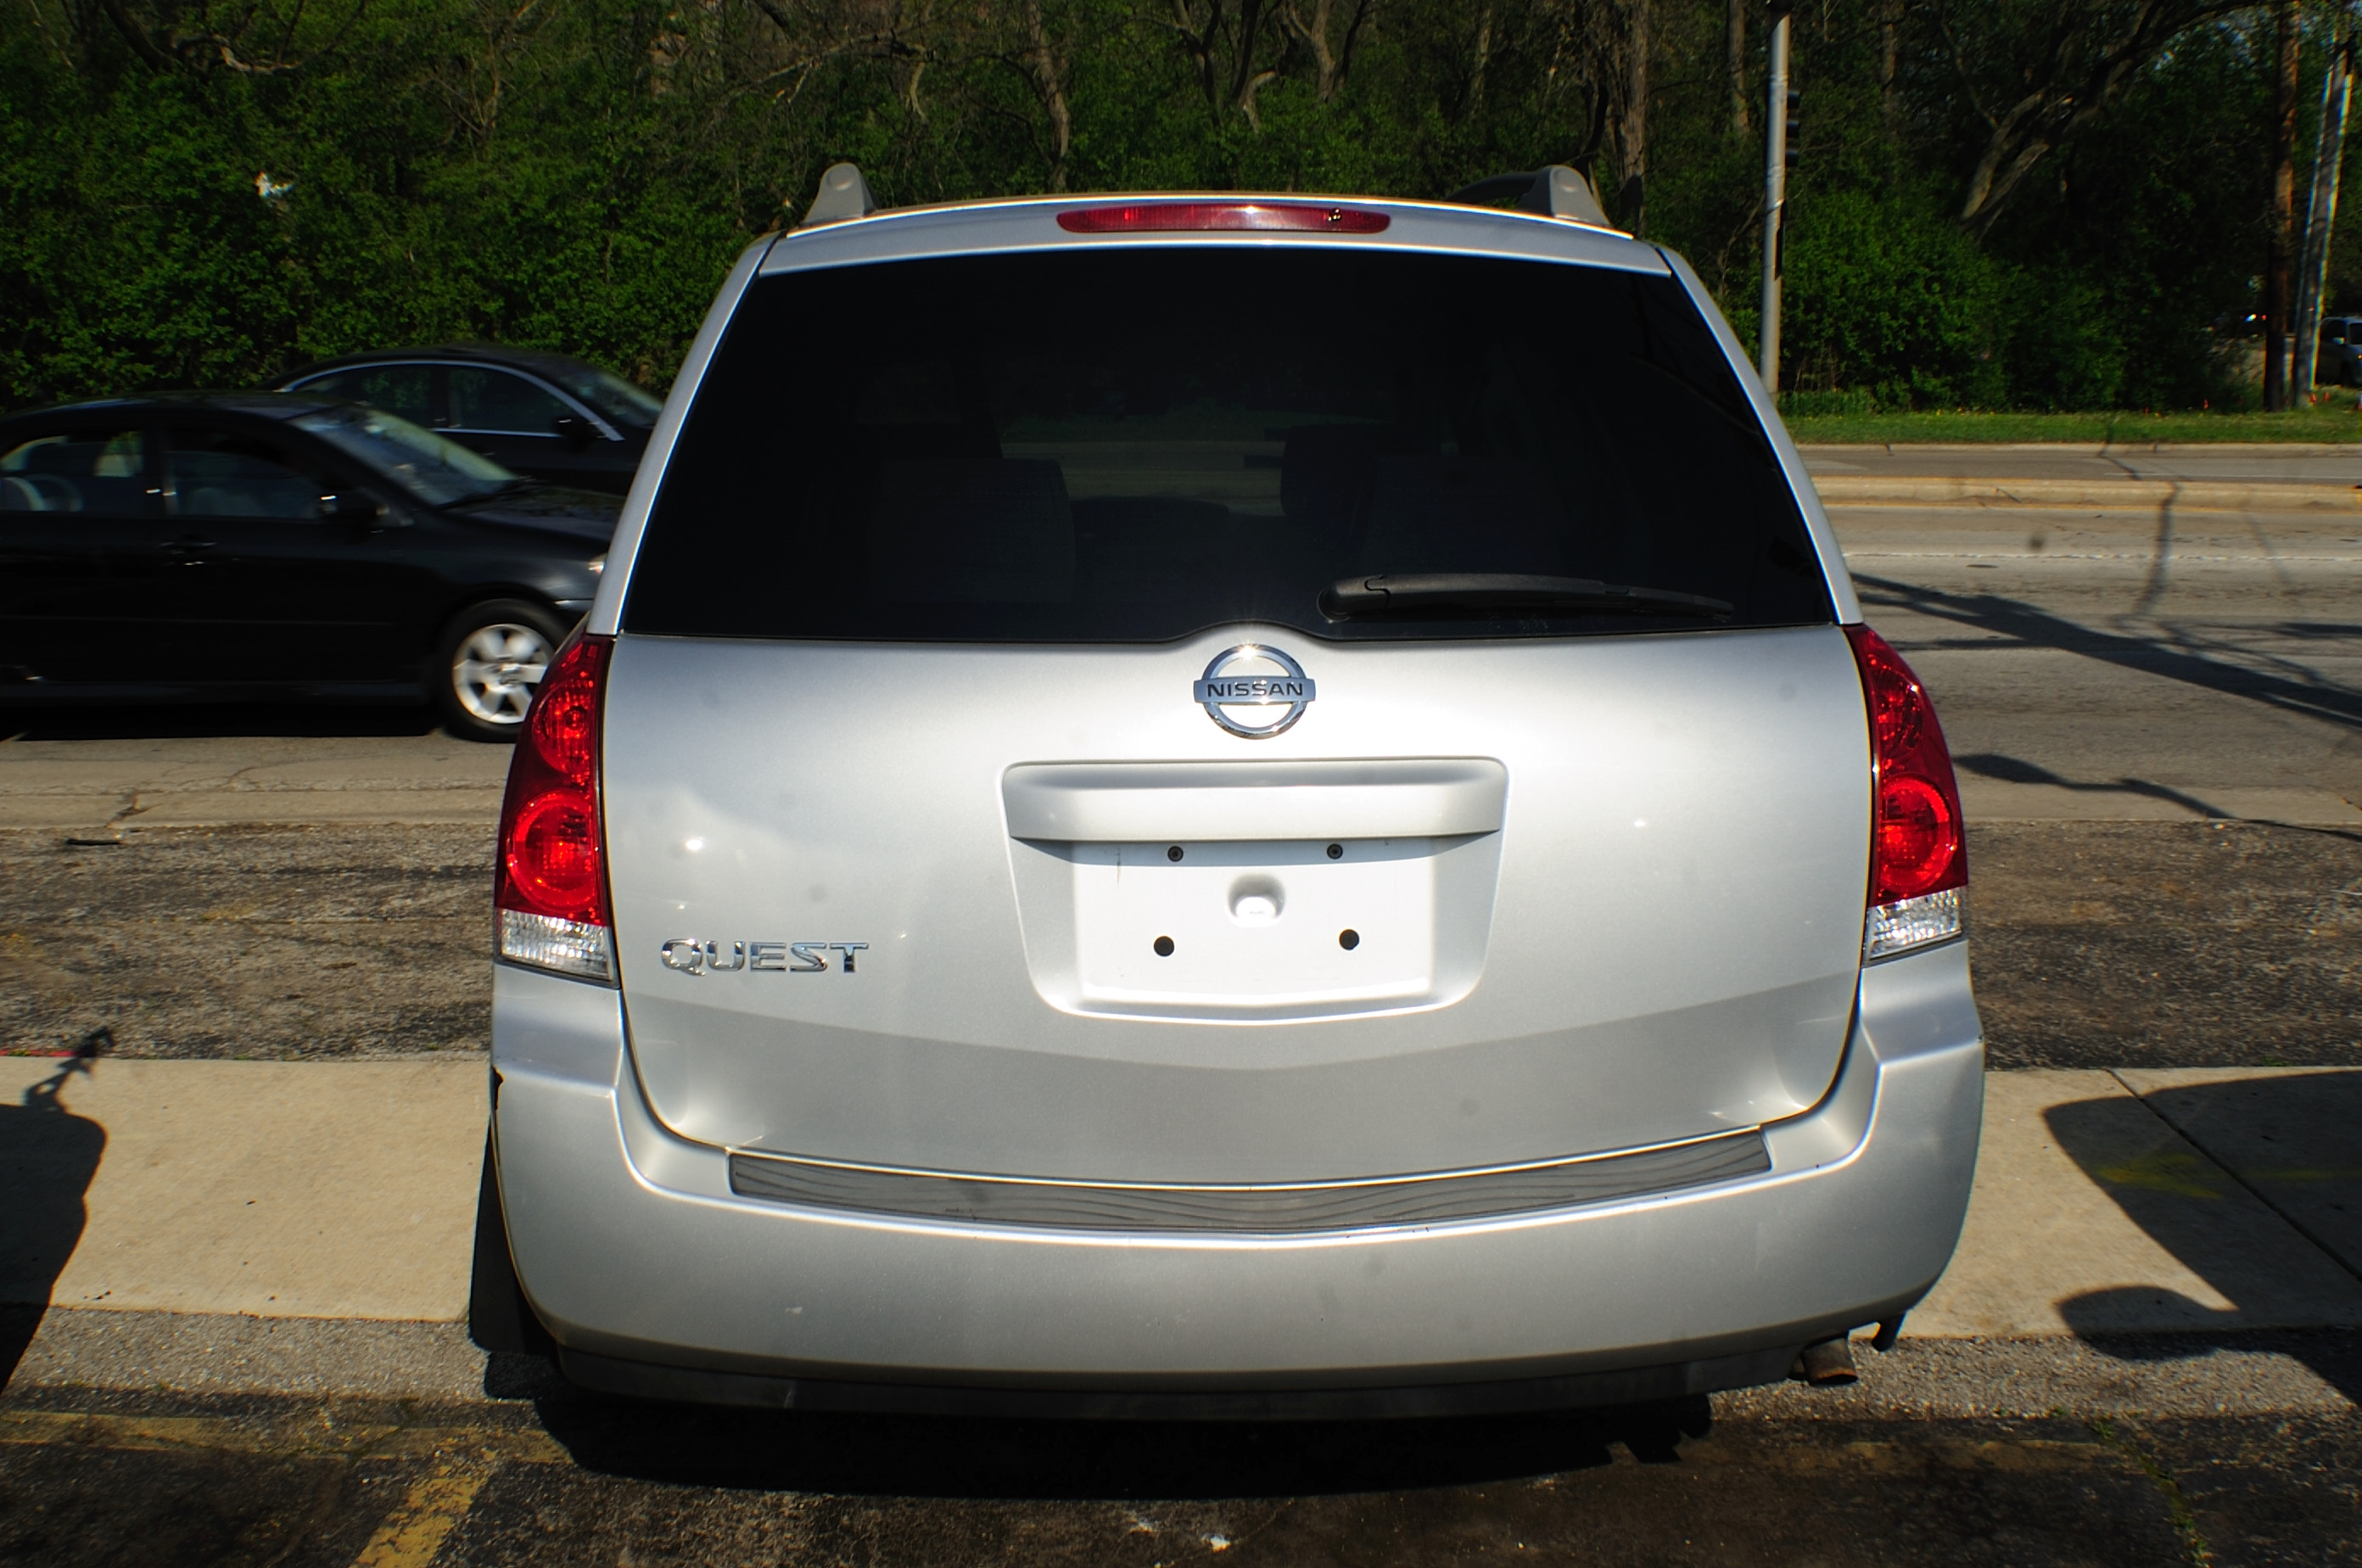 2006 Nissan Quest Silver Used Mini Van used car sale Gurnee Hanover Park Hoffman Estates Lombard